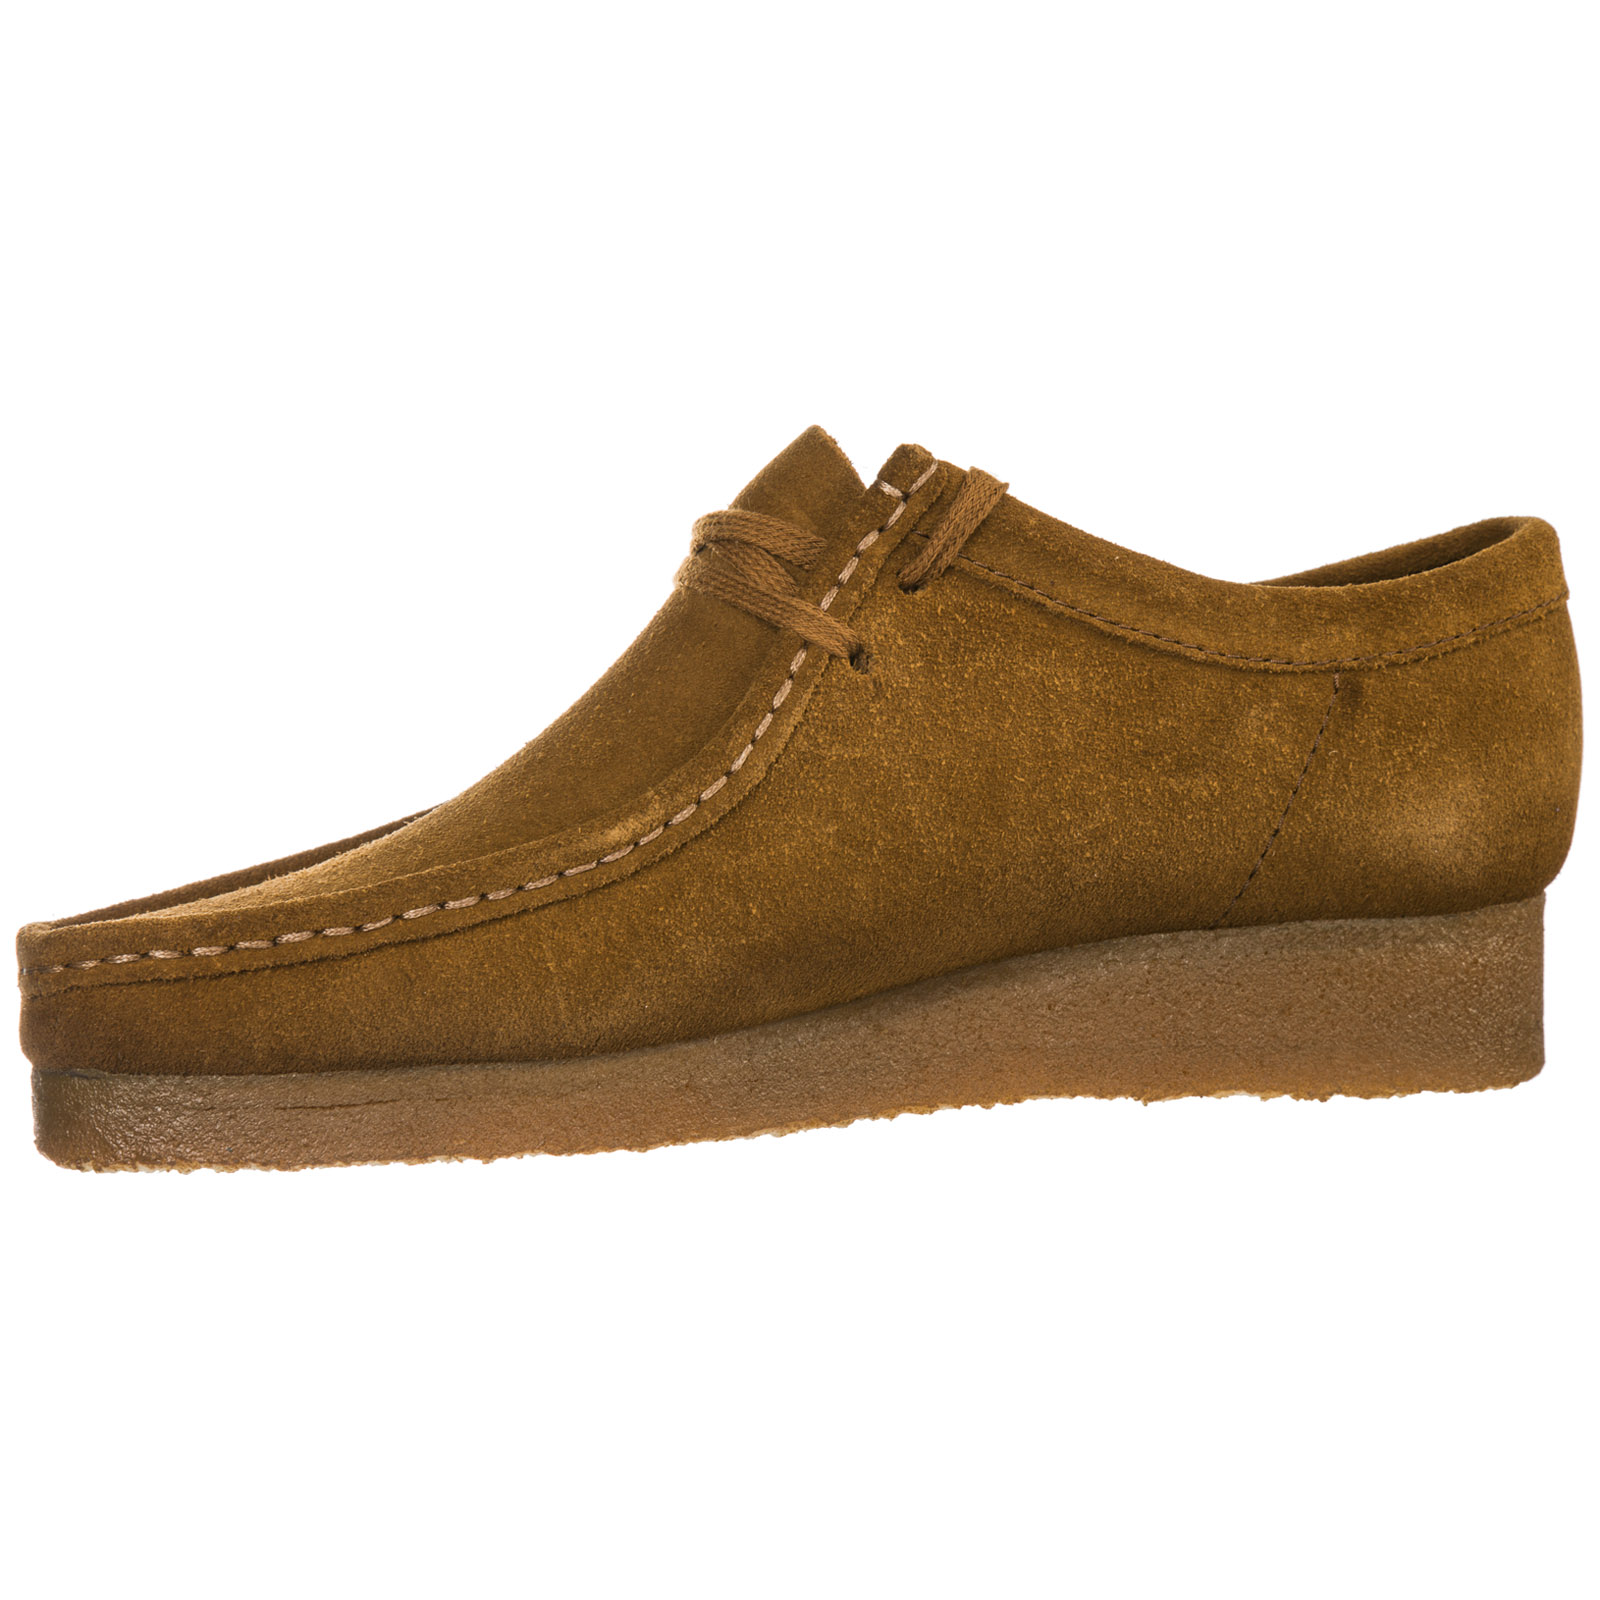 Wallabee Sneakers Clarks Clarks Clarks Sneakers Cola Wallabee29camcola Sneakers Cola Wallabee Wallabee29camcola IwTpqCn